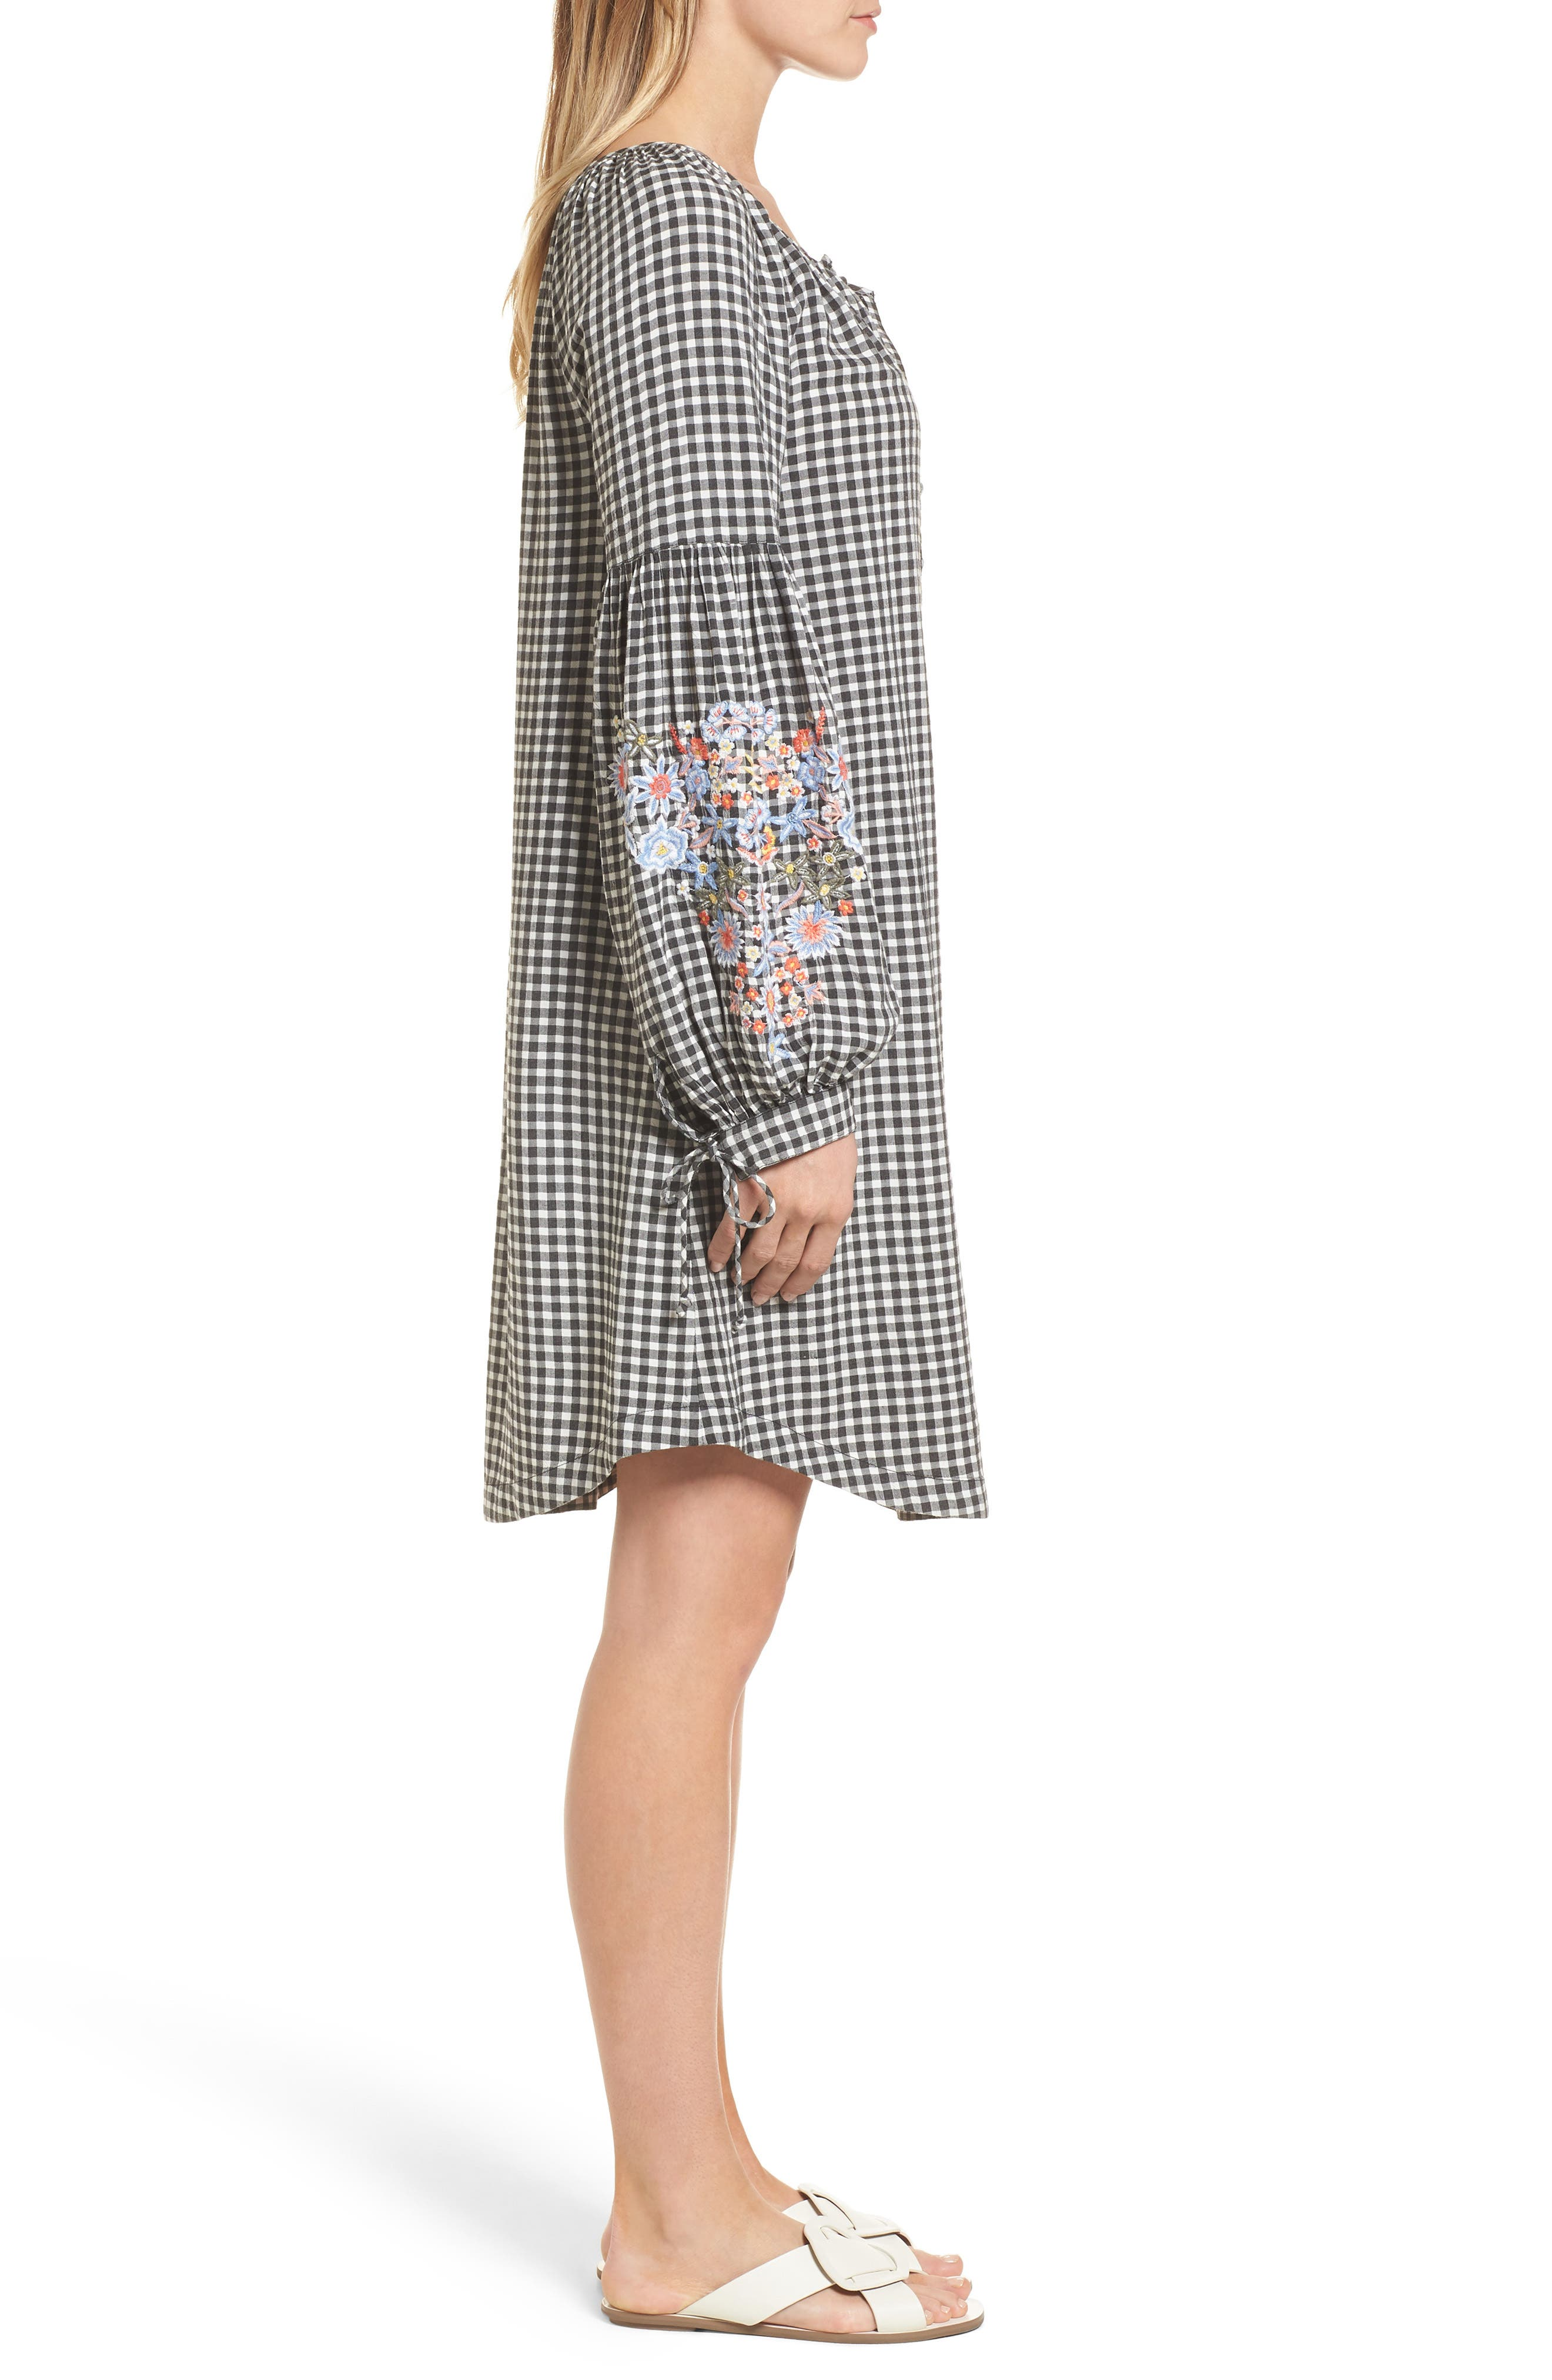 Embroidered Sleeve Shift Dress,                             Alternate thumbnail 3, color,                             001